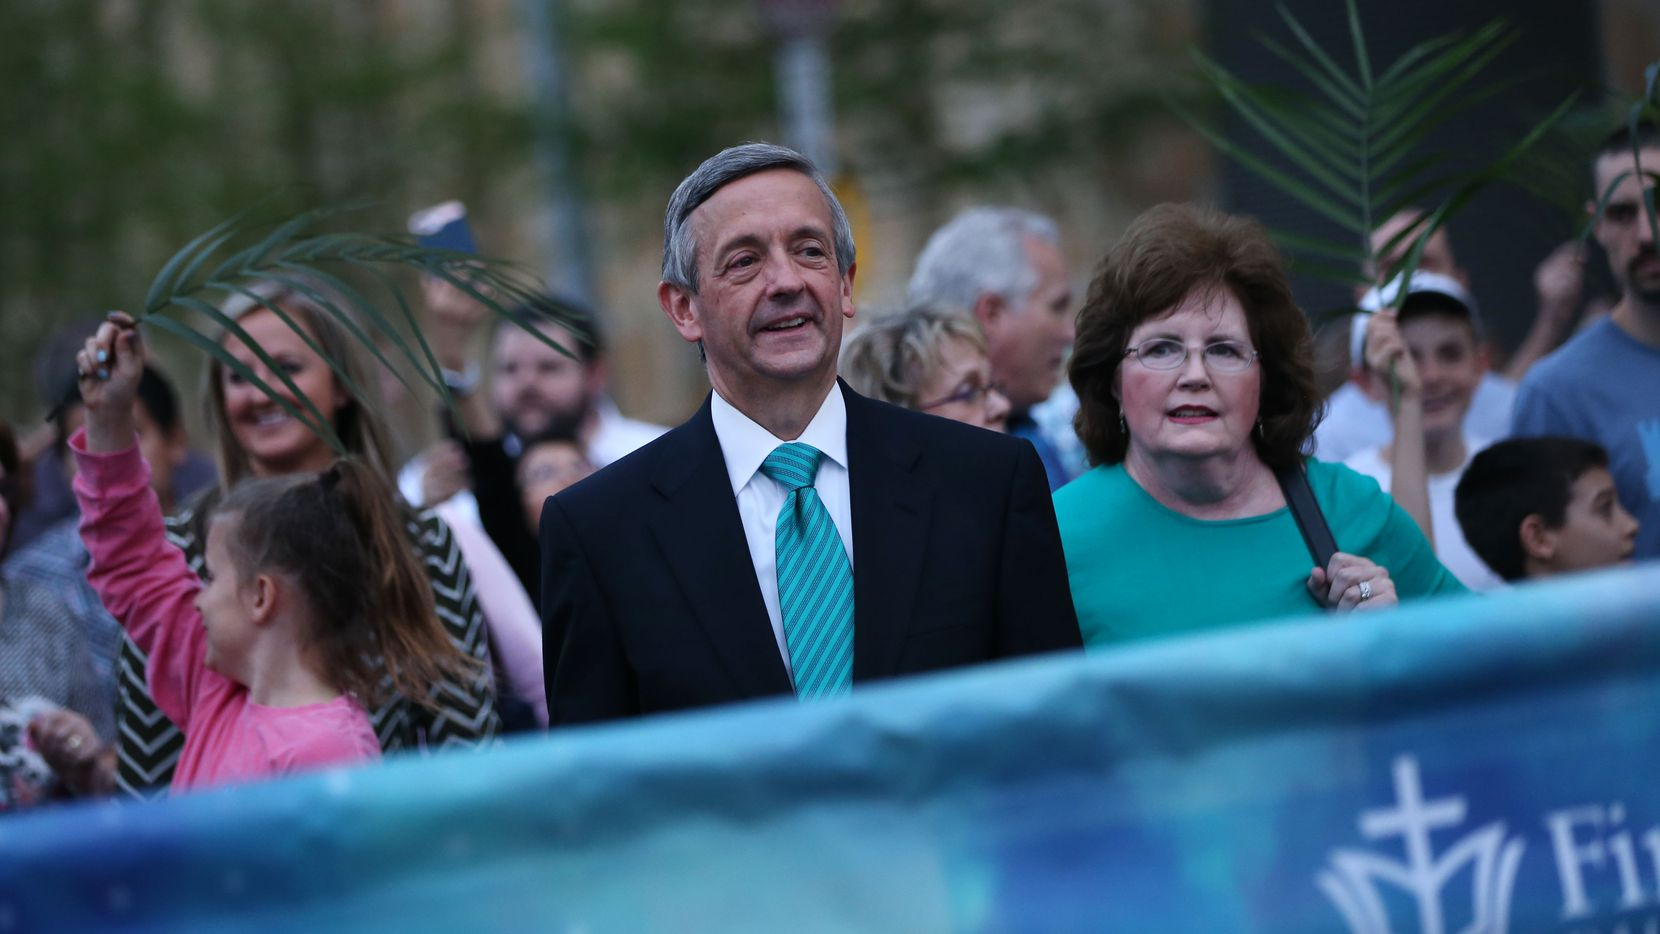 Pastor Robert Jeffress walks with his wife, Amy Jeffress, during the March for Eternal Life led by members of First Baptist Dallas in downtown Dallas on March 25.